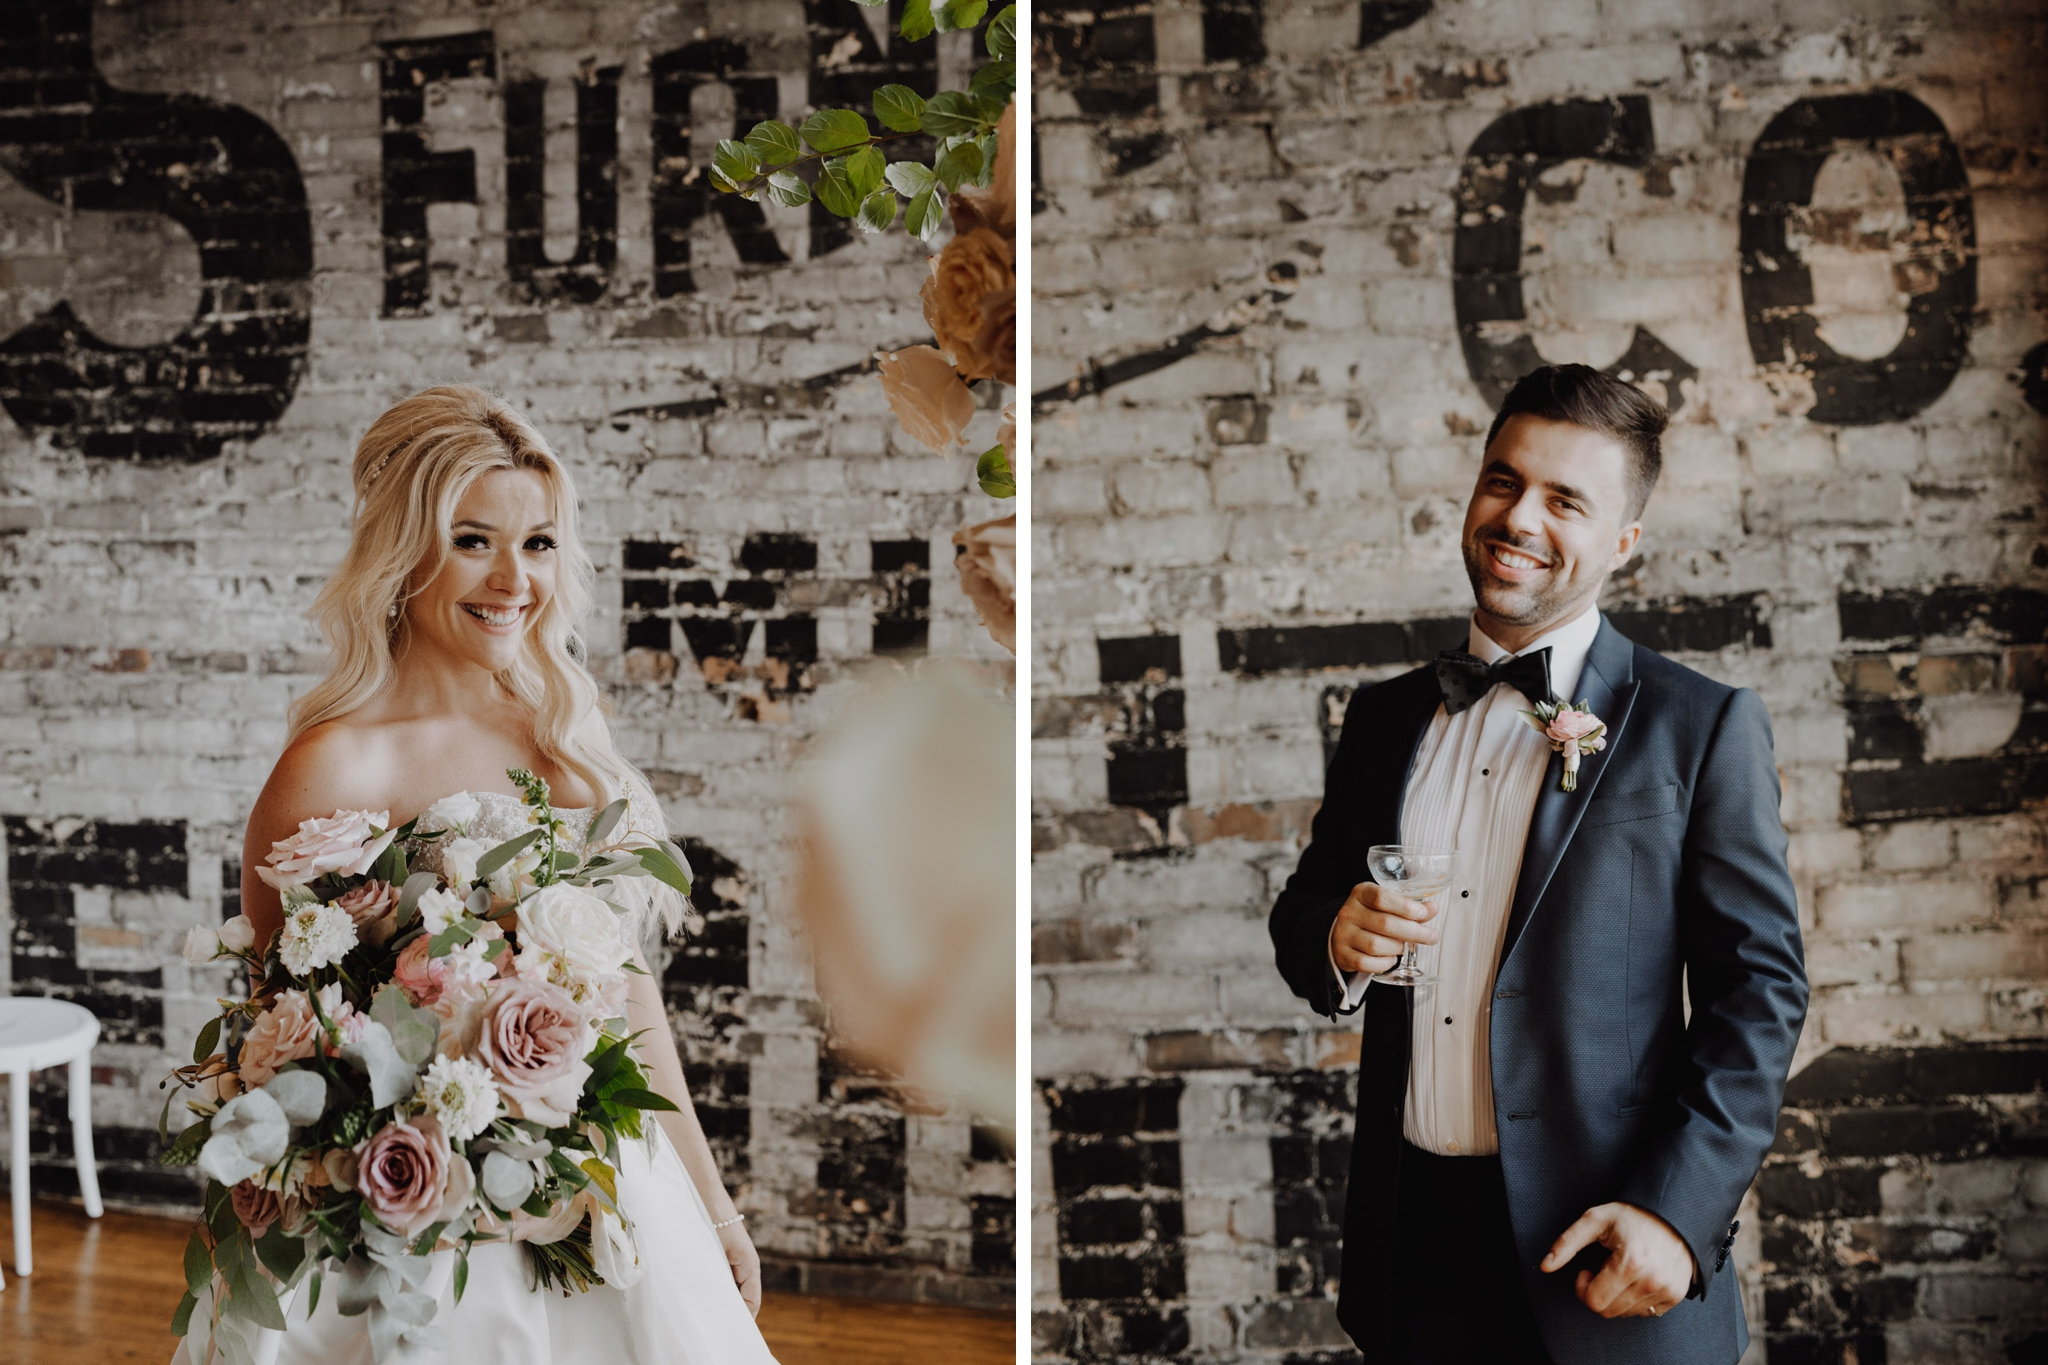 Bride and groom portraits at The Burroughes Wedding. Love By Lynzie. Wedding Photographer Jennifer See Studios.